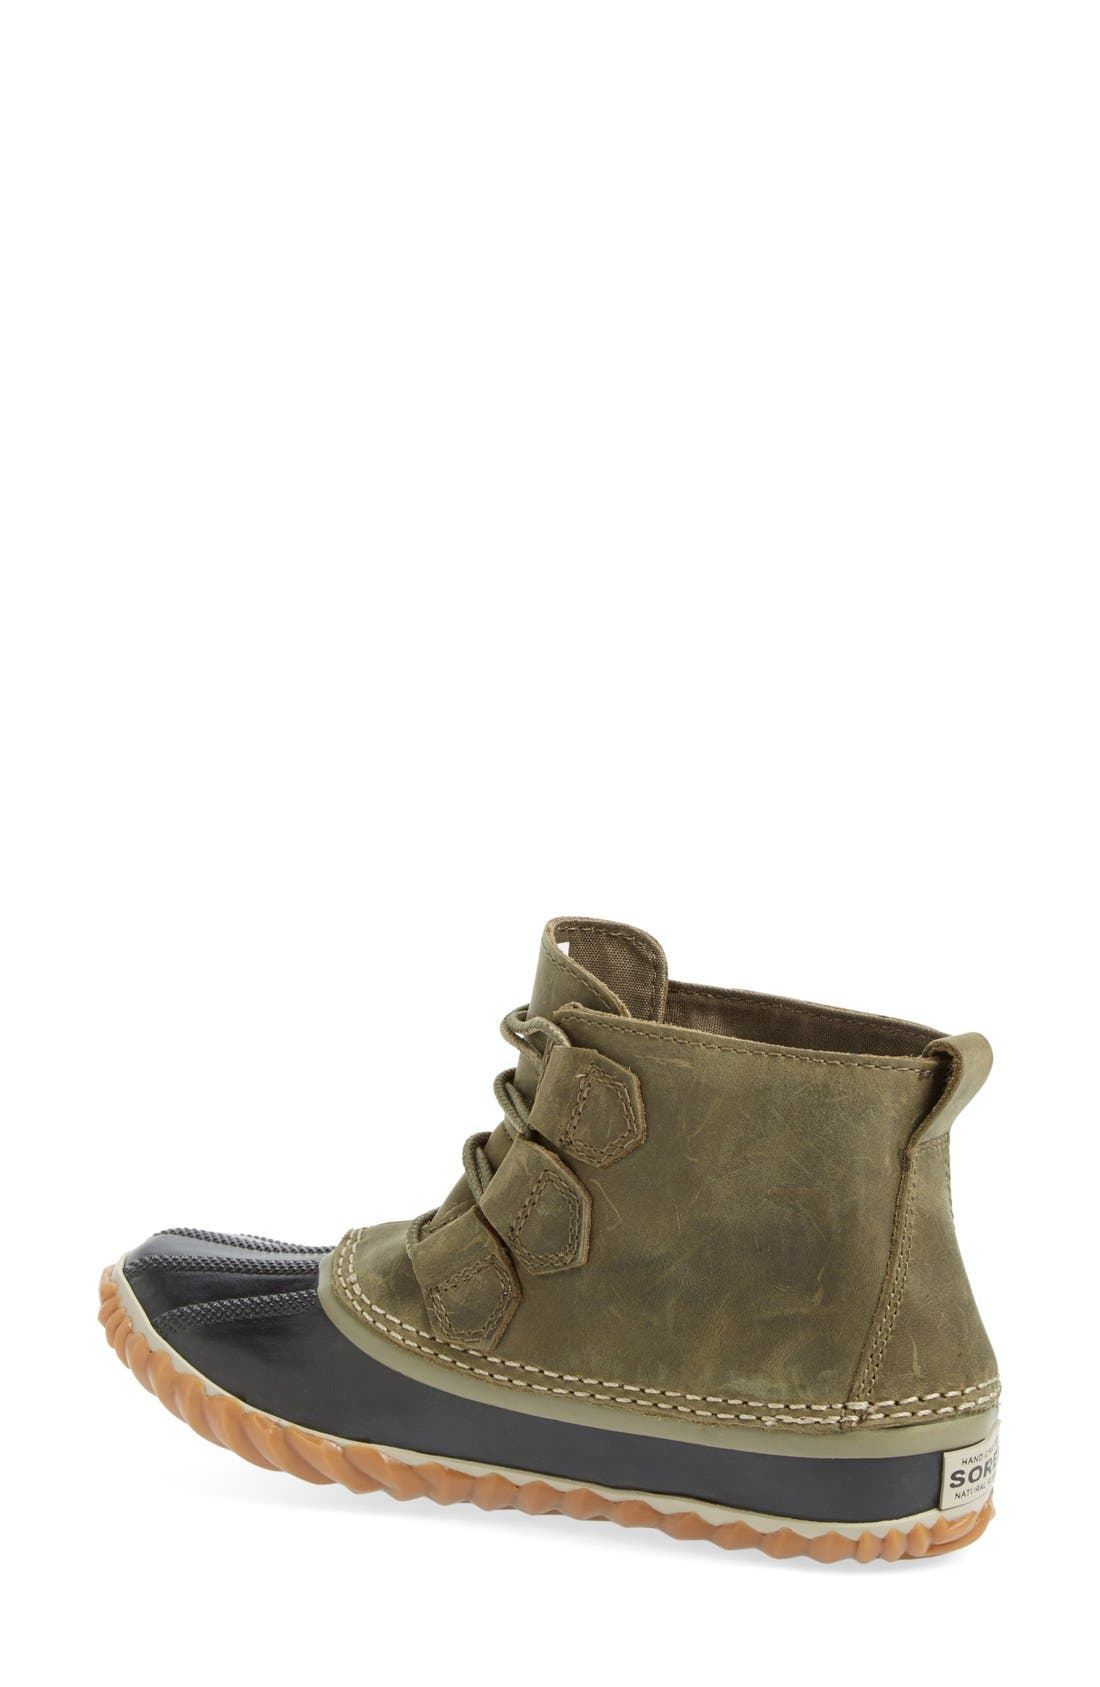 'Out N About' Leather Boot,                             Alternate thumbnail 18, color,